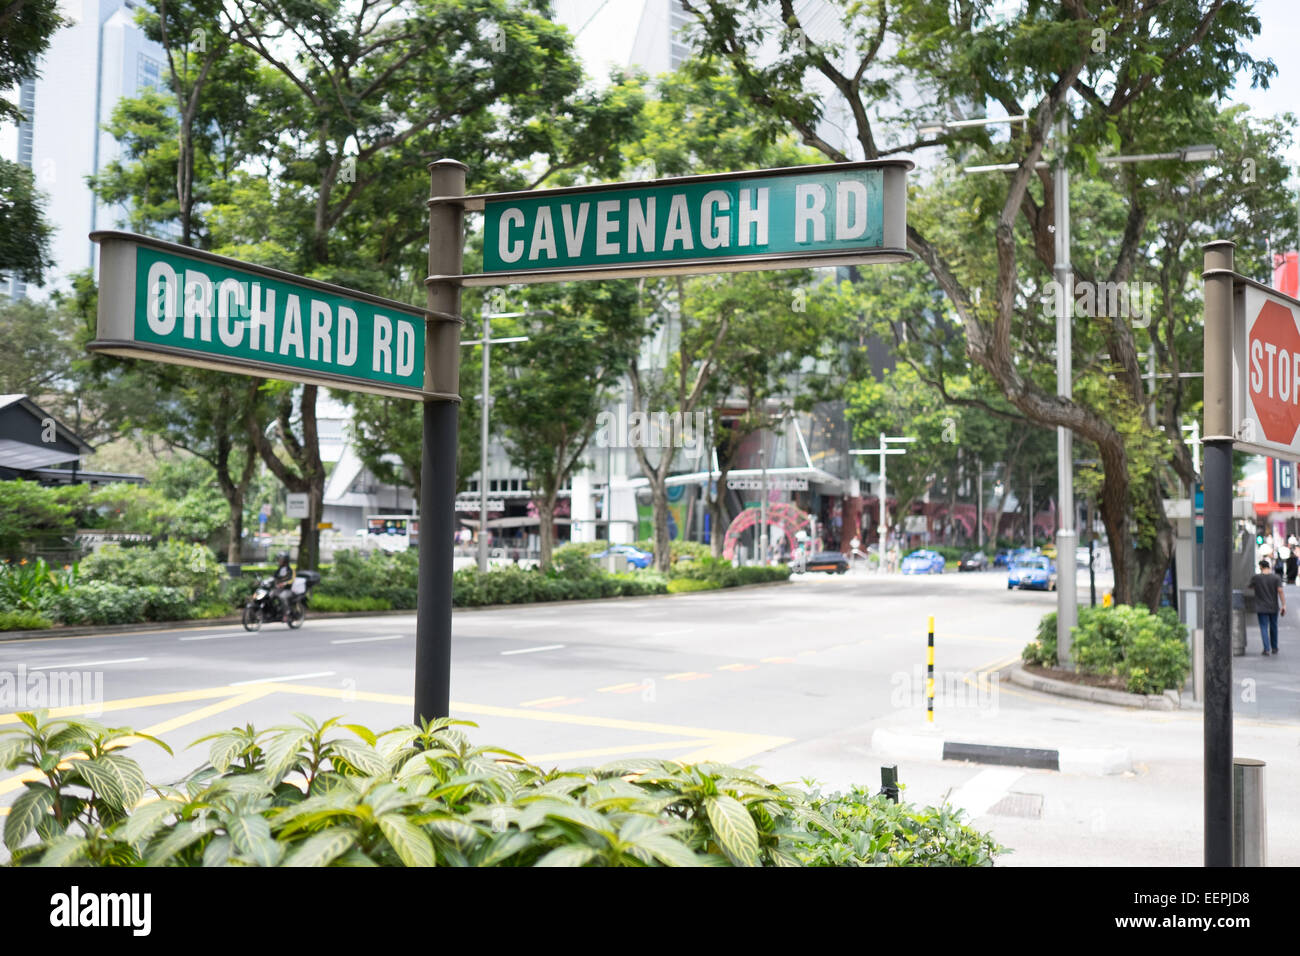 Th corner of Orchard Road and Cavenagh Road in Singapore's famous Orchard Road shopping district. - Stock Image